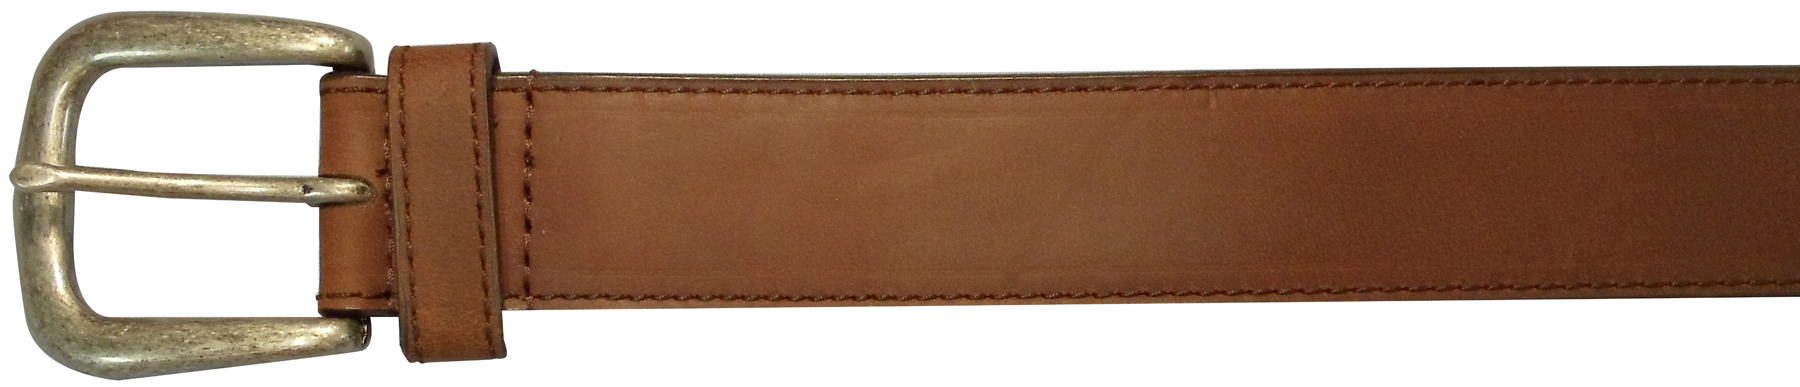 "10625410234 - 34"" Plain Brown Leather Field & Stream Belt"